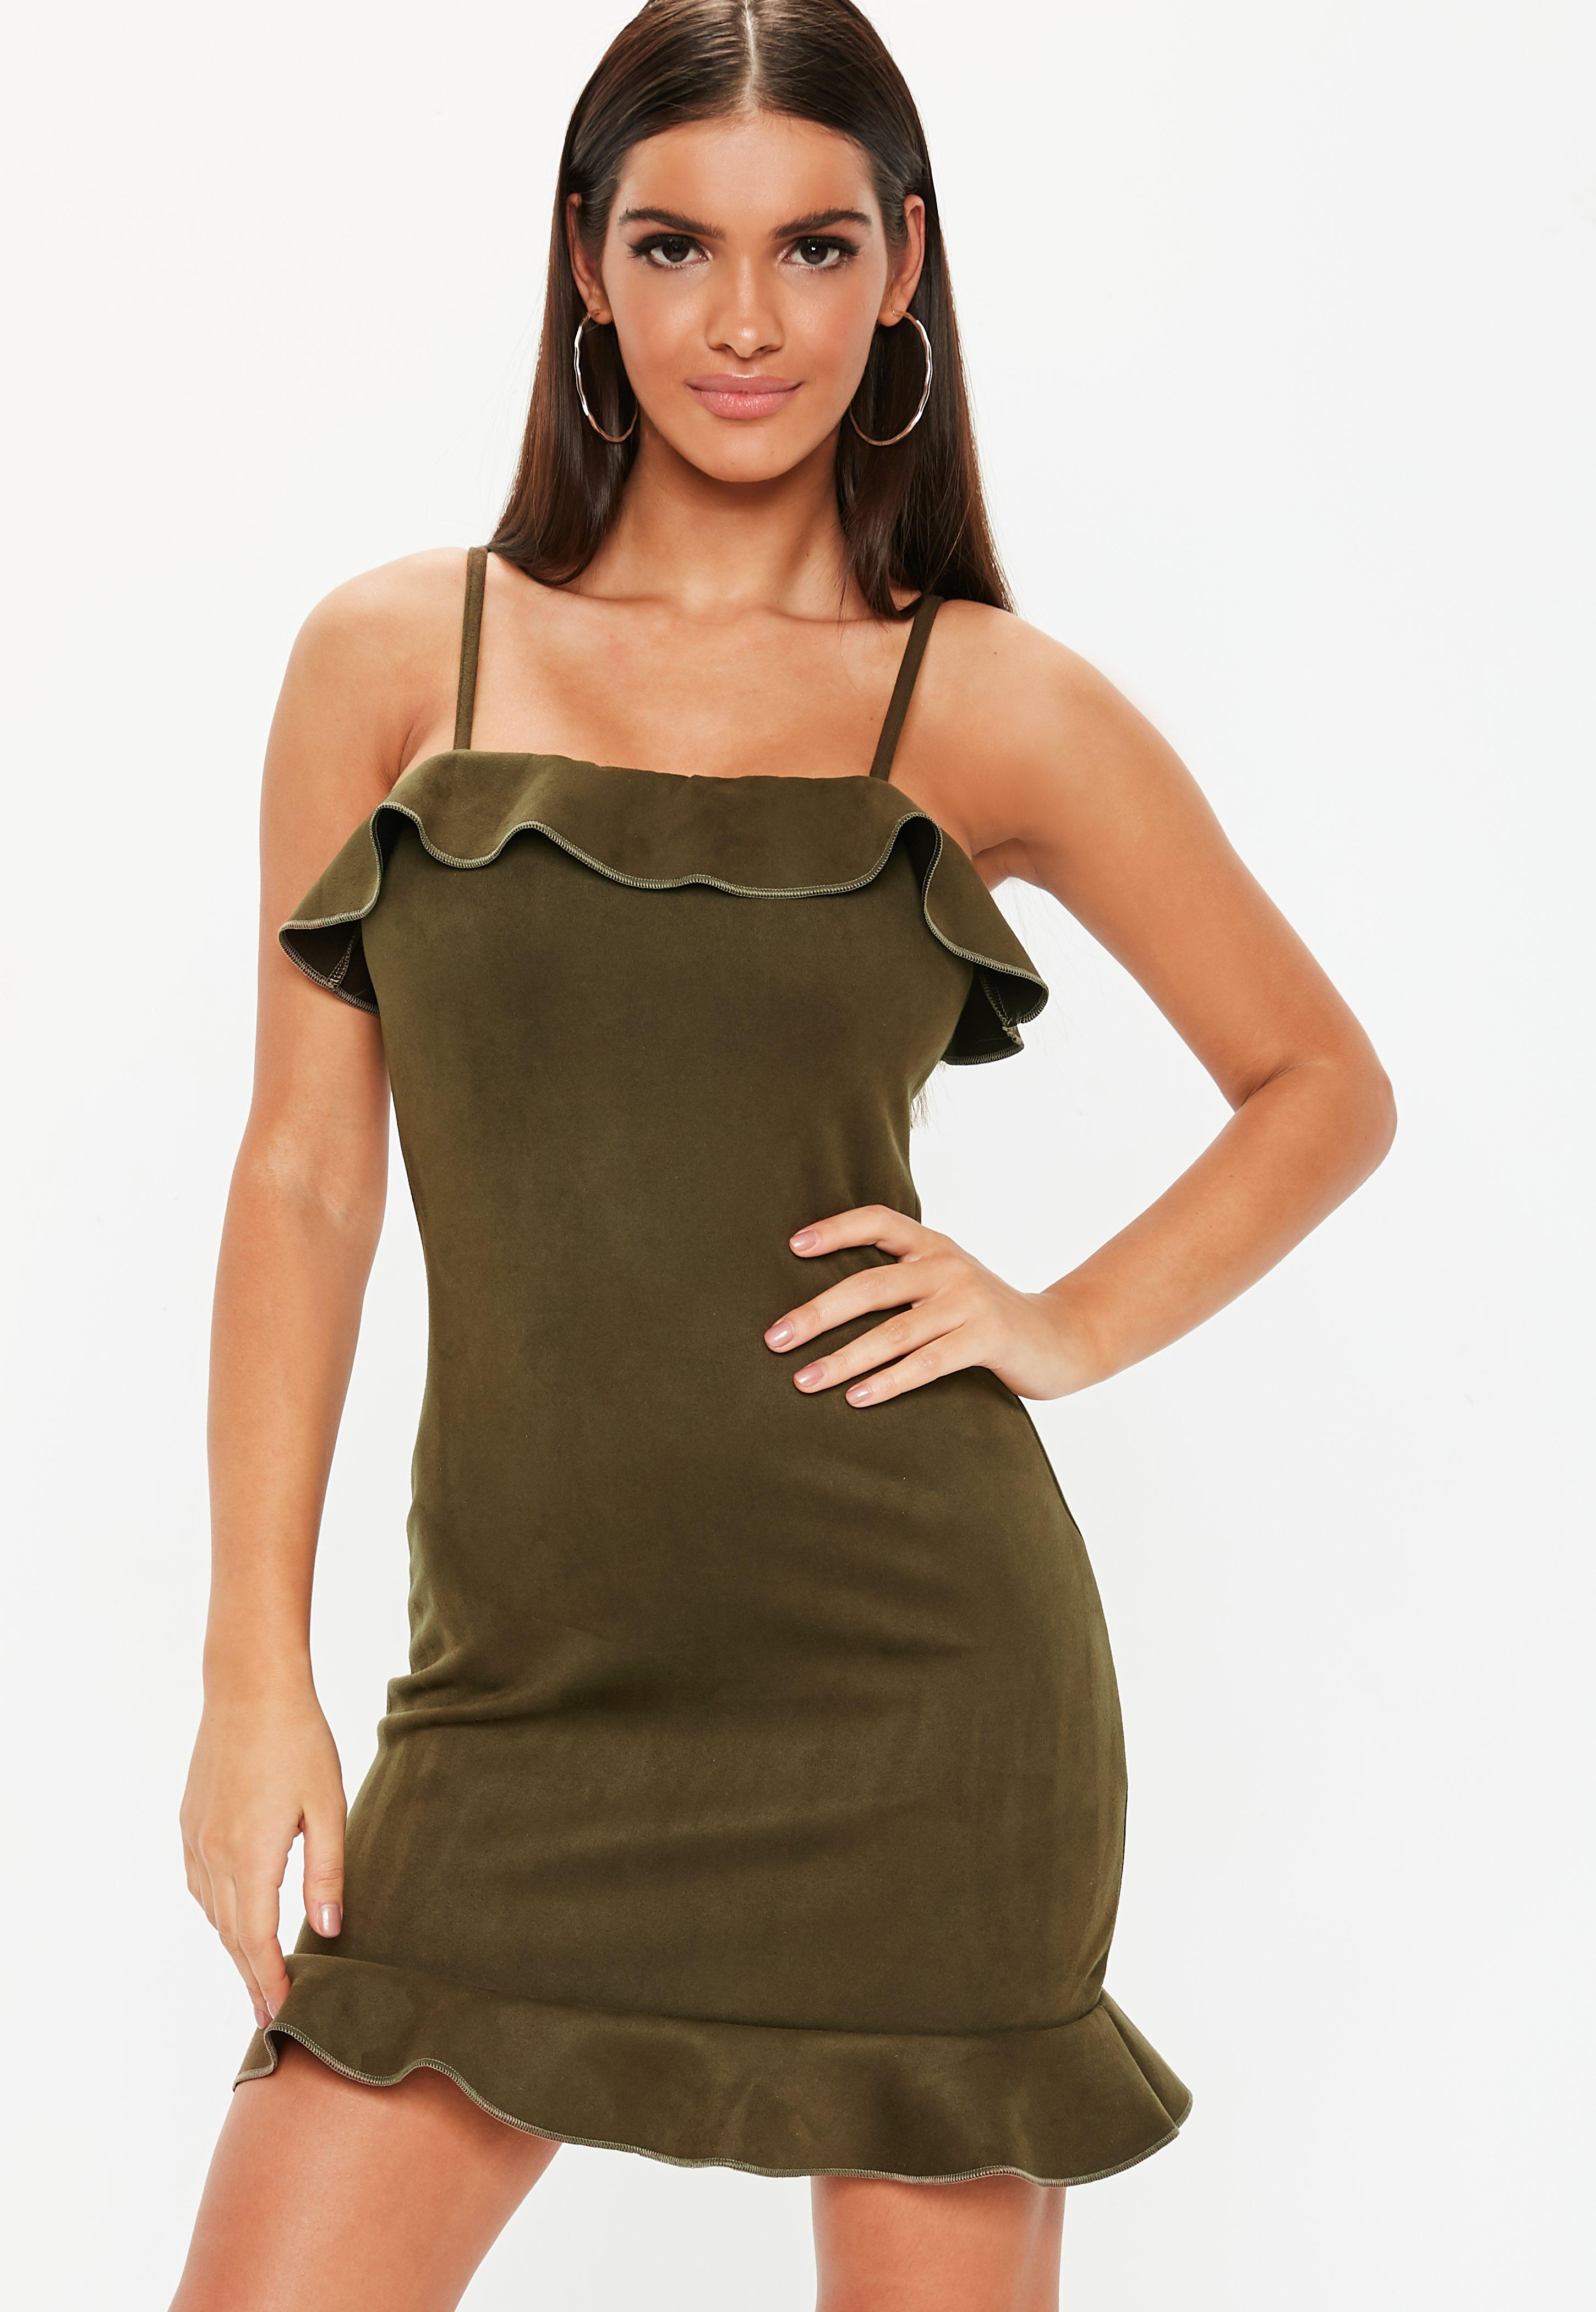 50a8553cfd7c Suede Dresses Online - Missguided